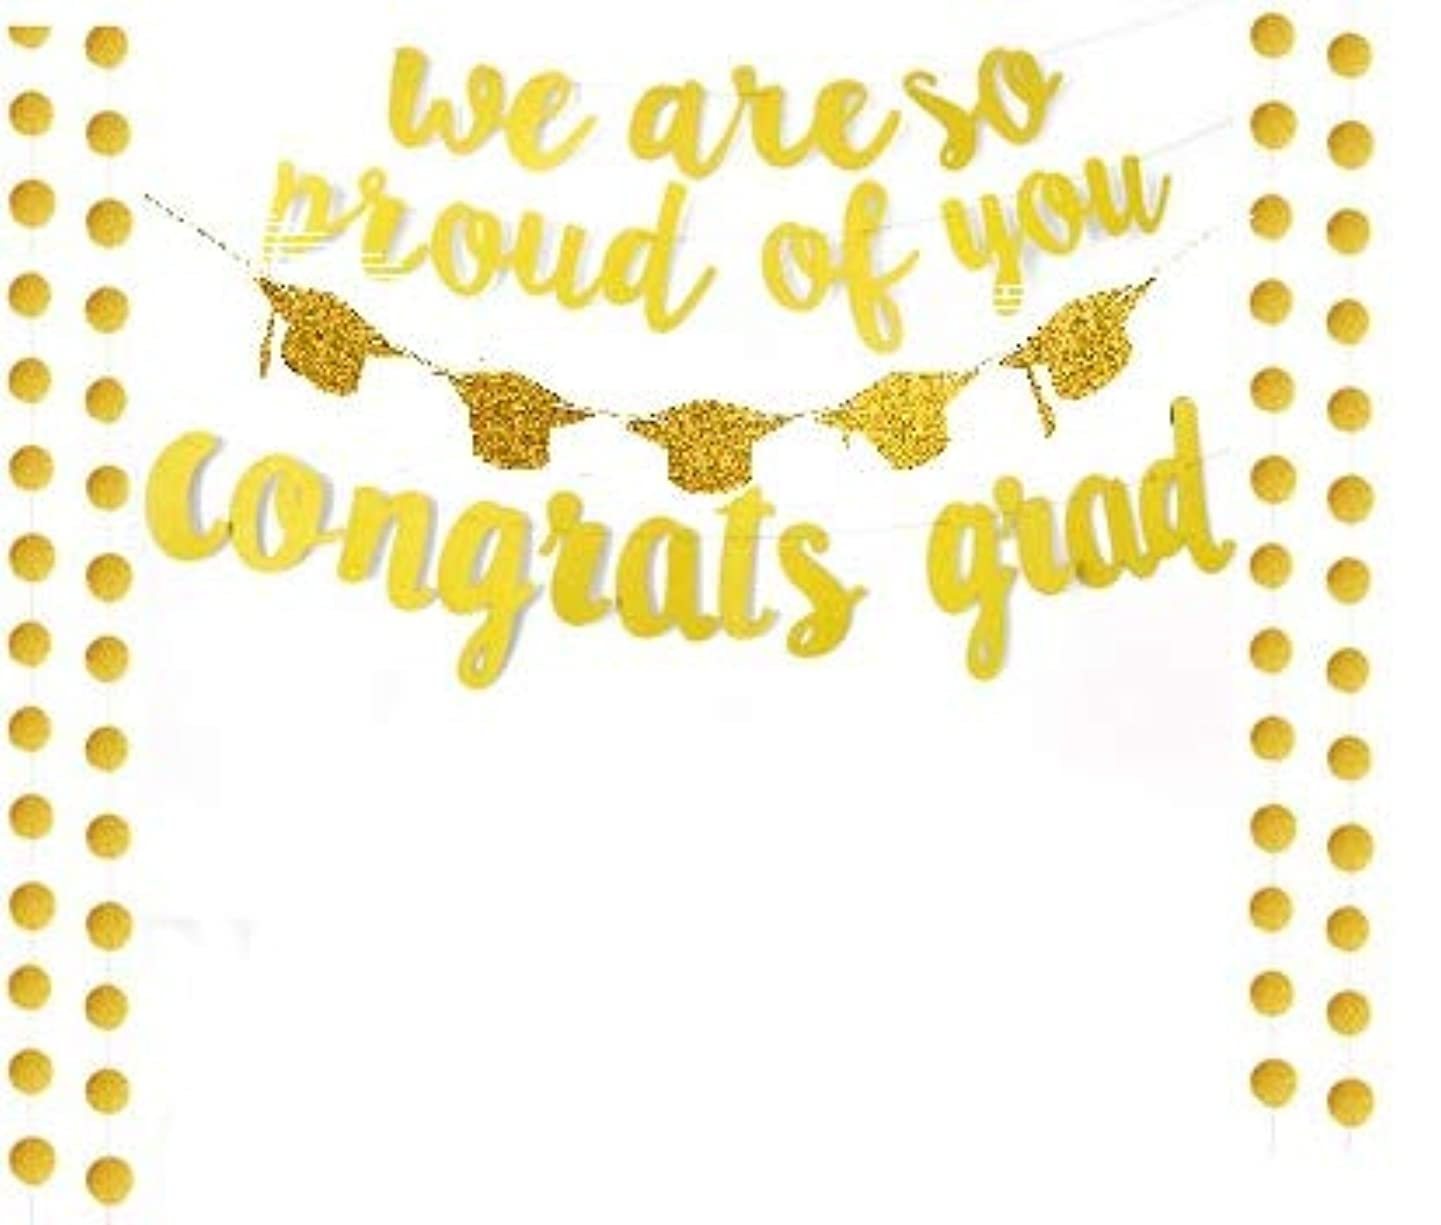 Gold Glittery We are So Proud of You Banner with Glitter Graduation Hats and Circle Dots -Graduation Party/Grad Party Decorations